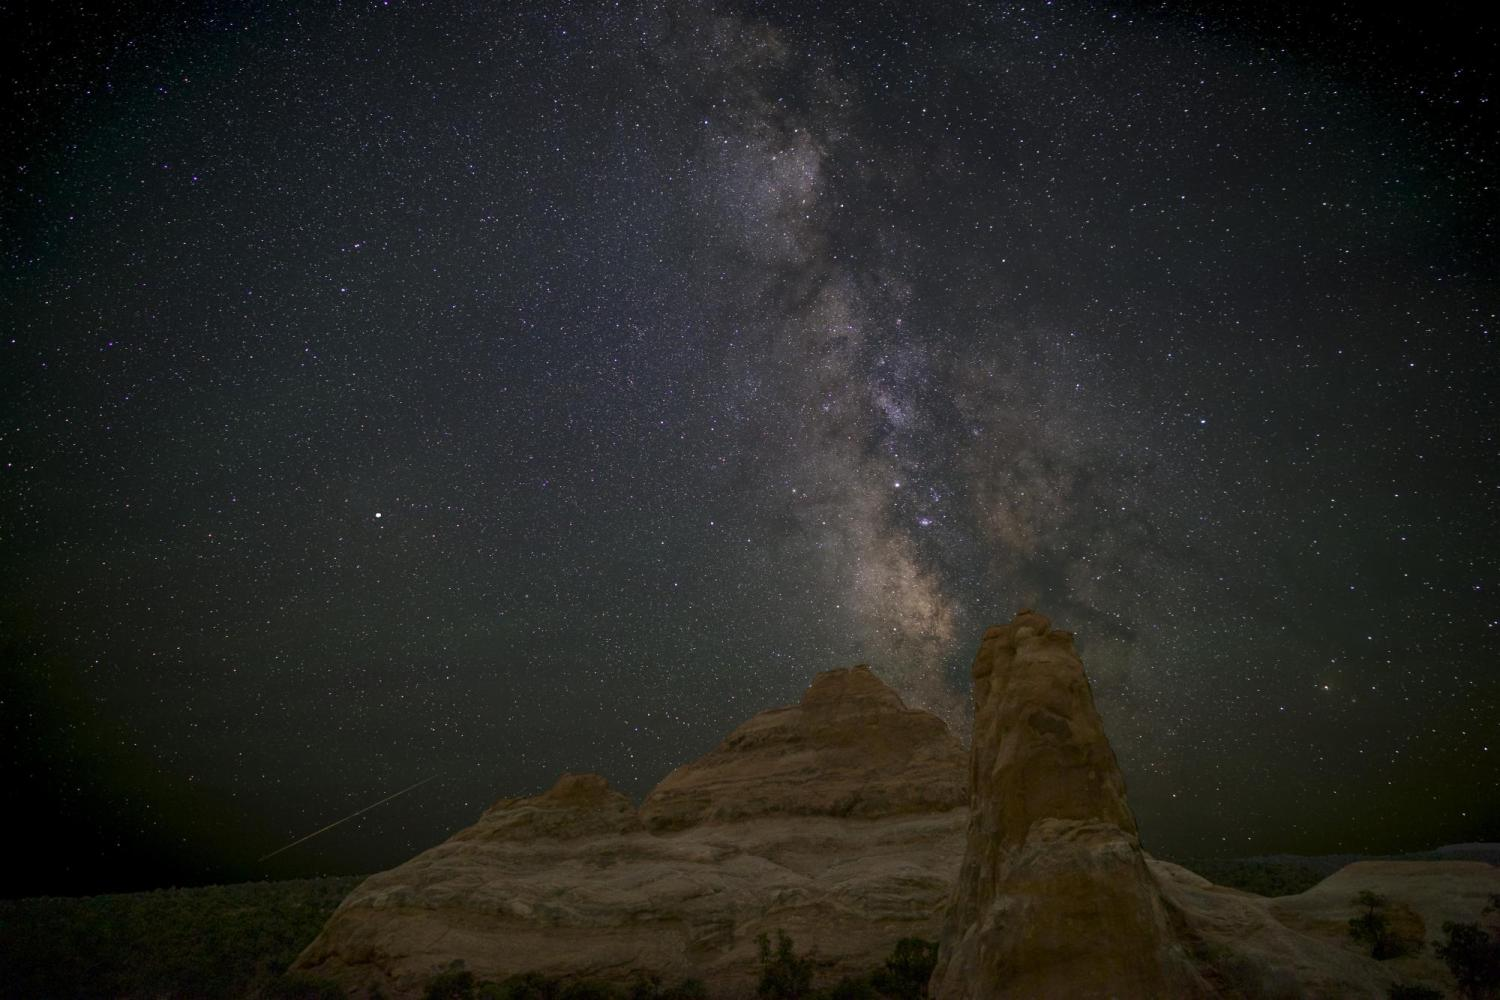 The Milky Way as seen in August; the galactic center is just above and to the left of the spire